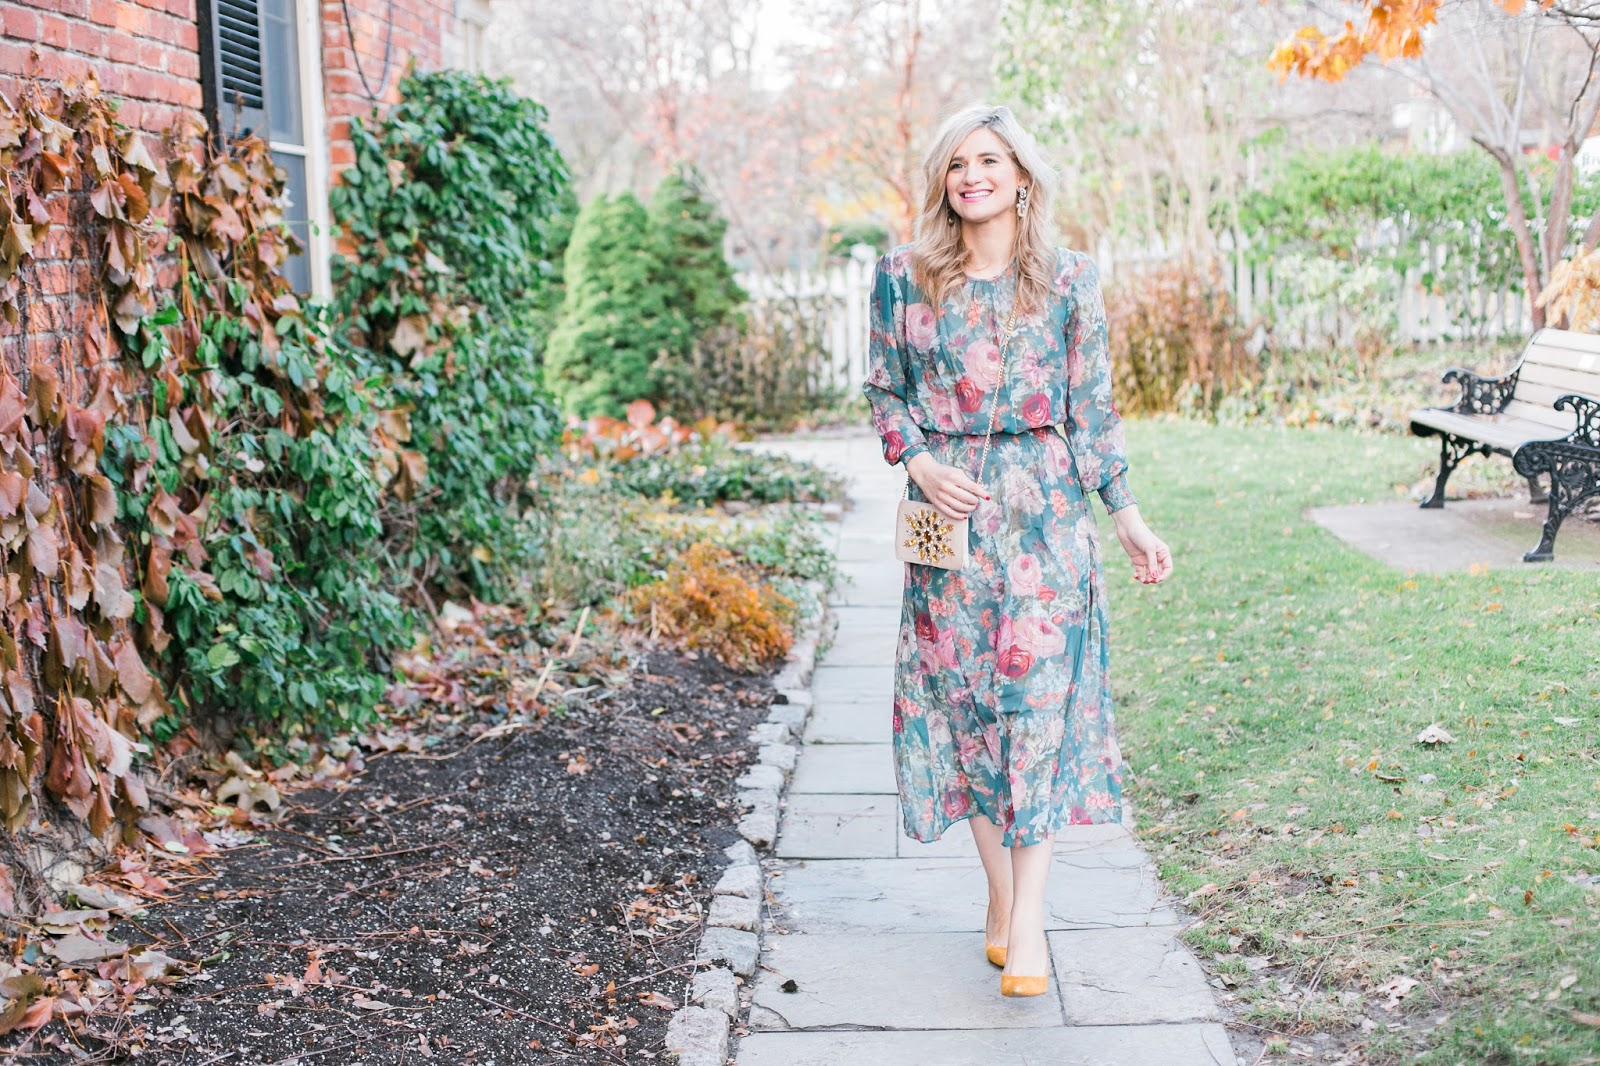 What To Wear To a Fall Wedding - Floral green midi dress